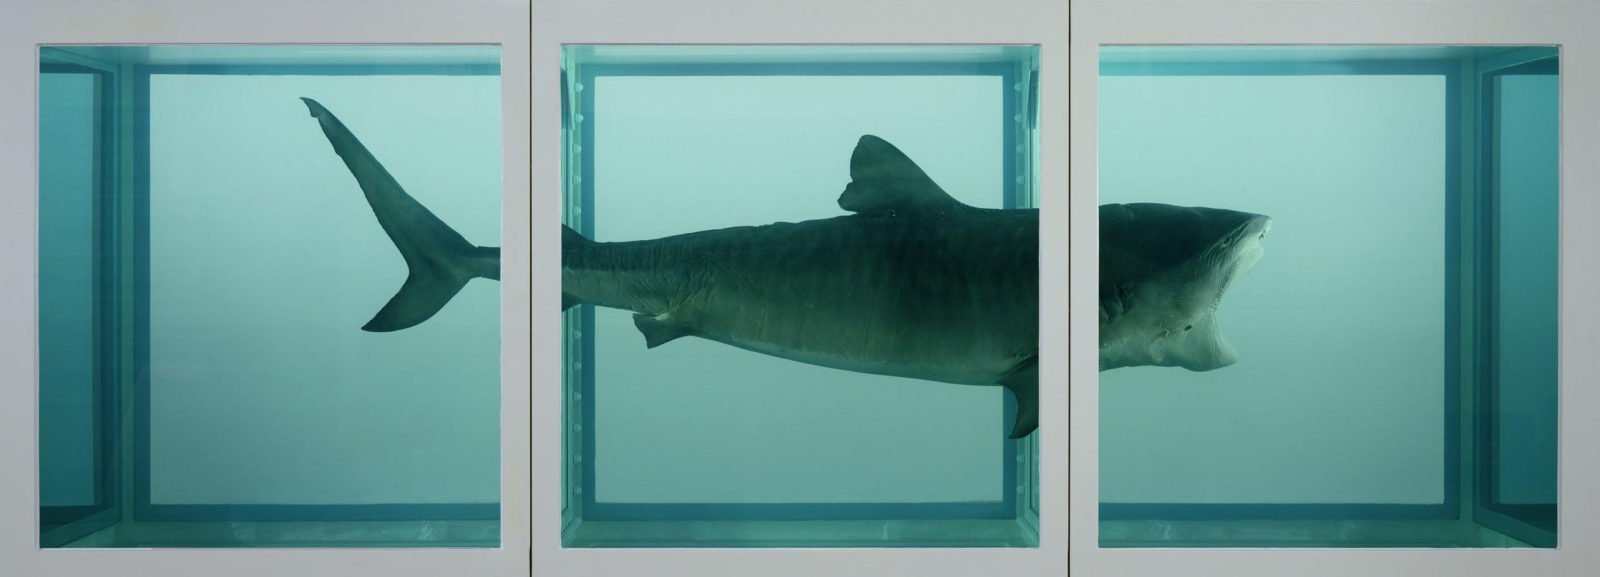 Damien Hirst, The Physical Impossibility of Death in the Mind of Someone Living, 1991, Tate Modern, London, UK.